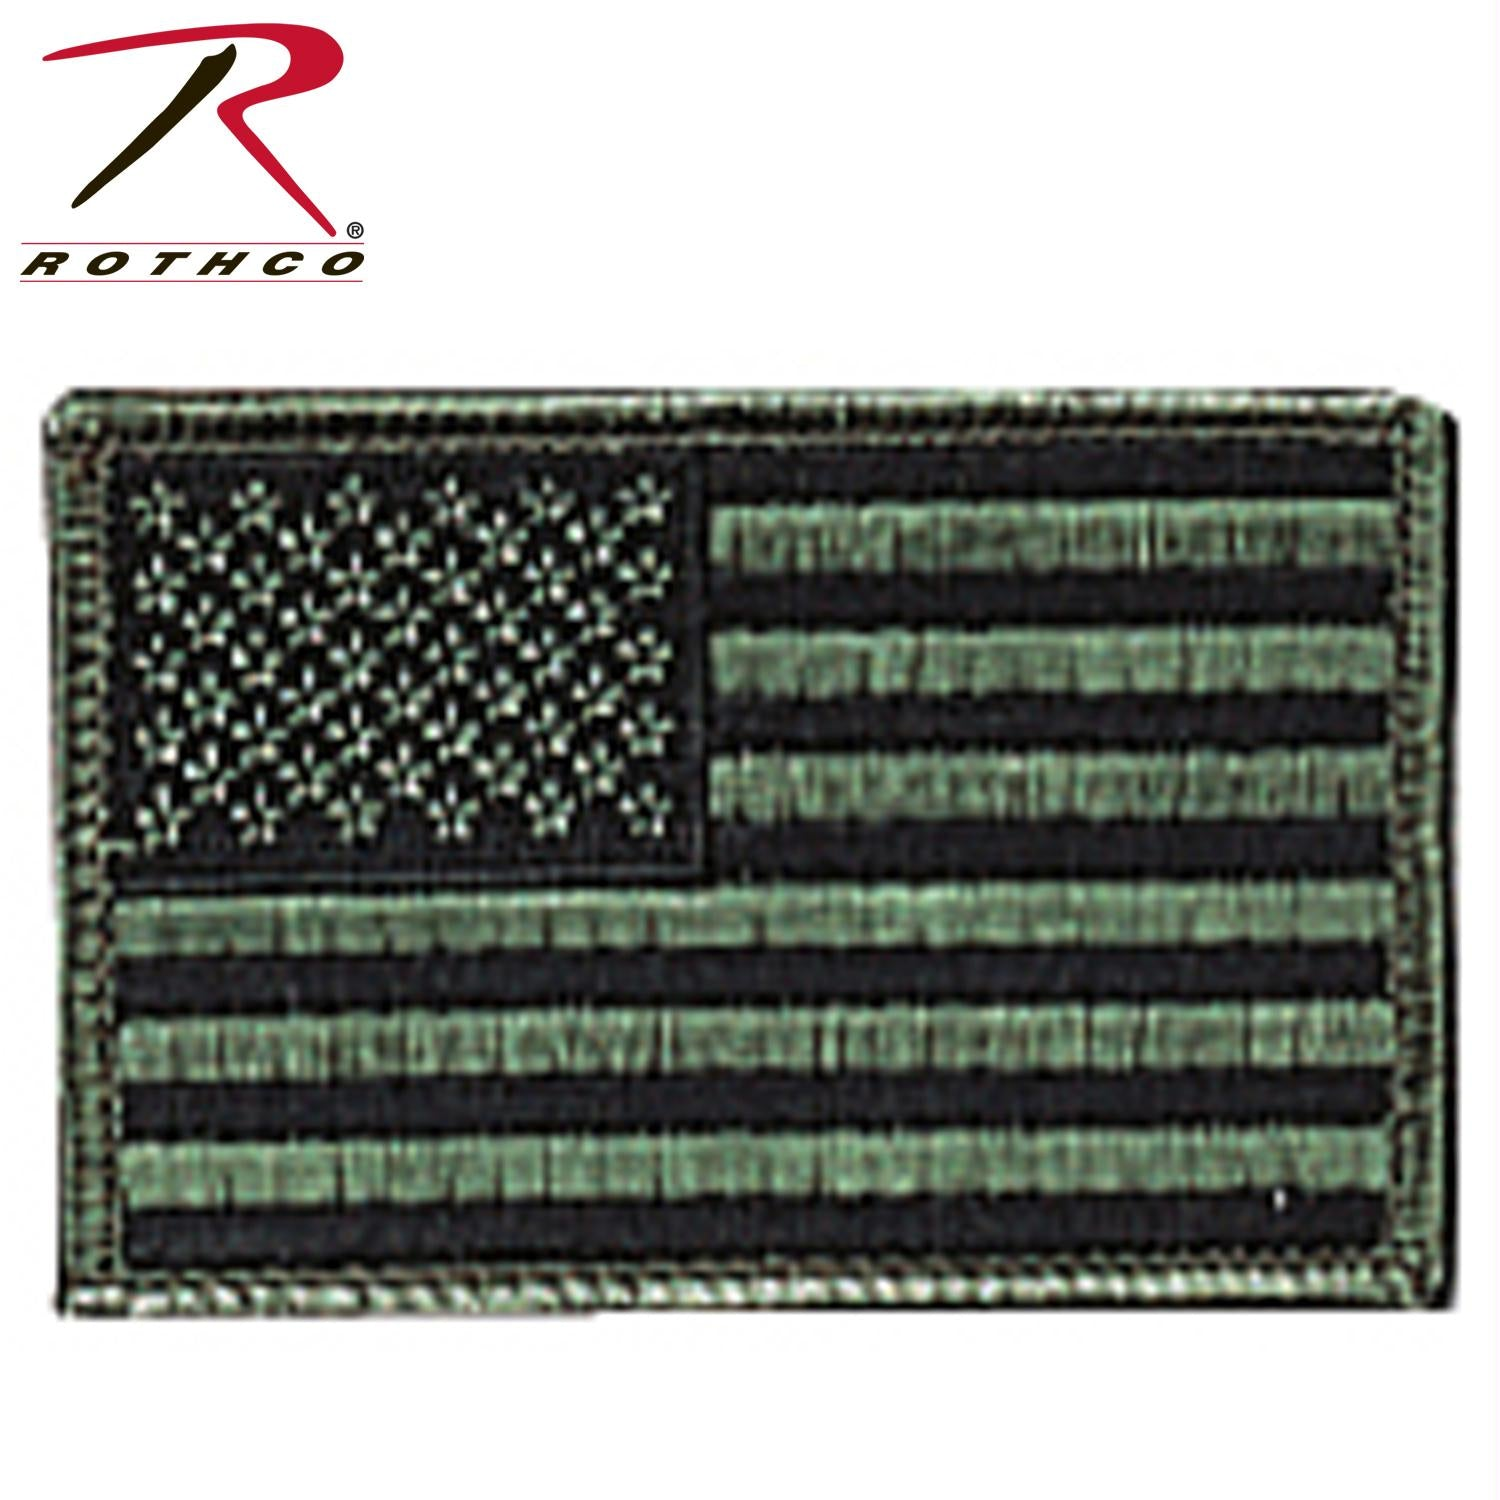 Rothco Iron On / Sew On Embroidered US Flag Patch - Subdued Olive Drab / Normal